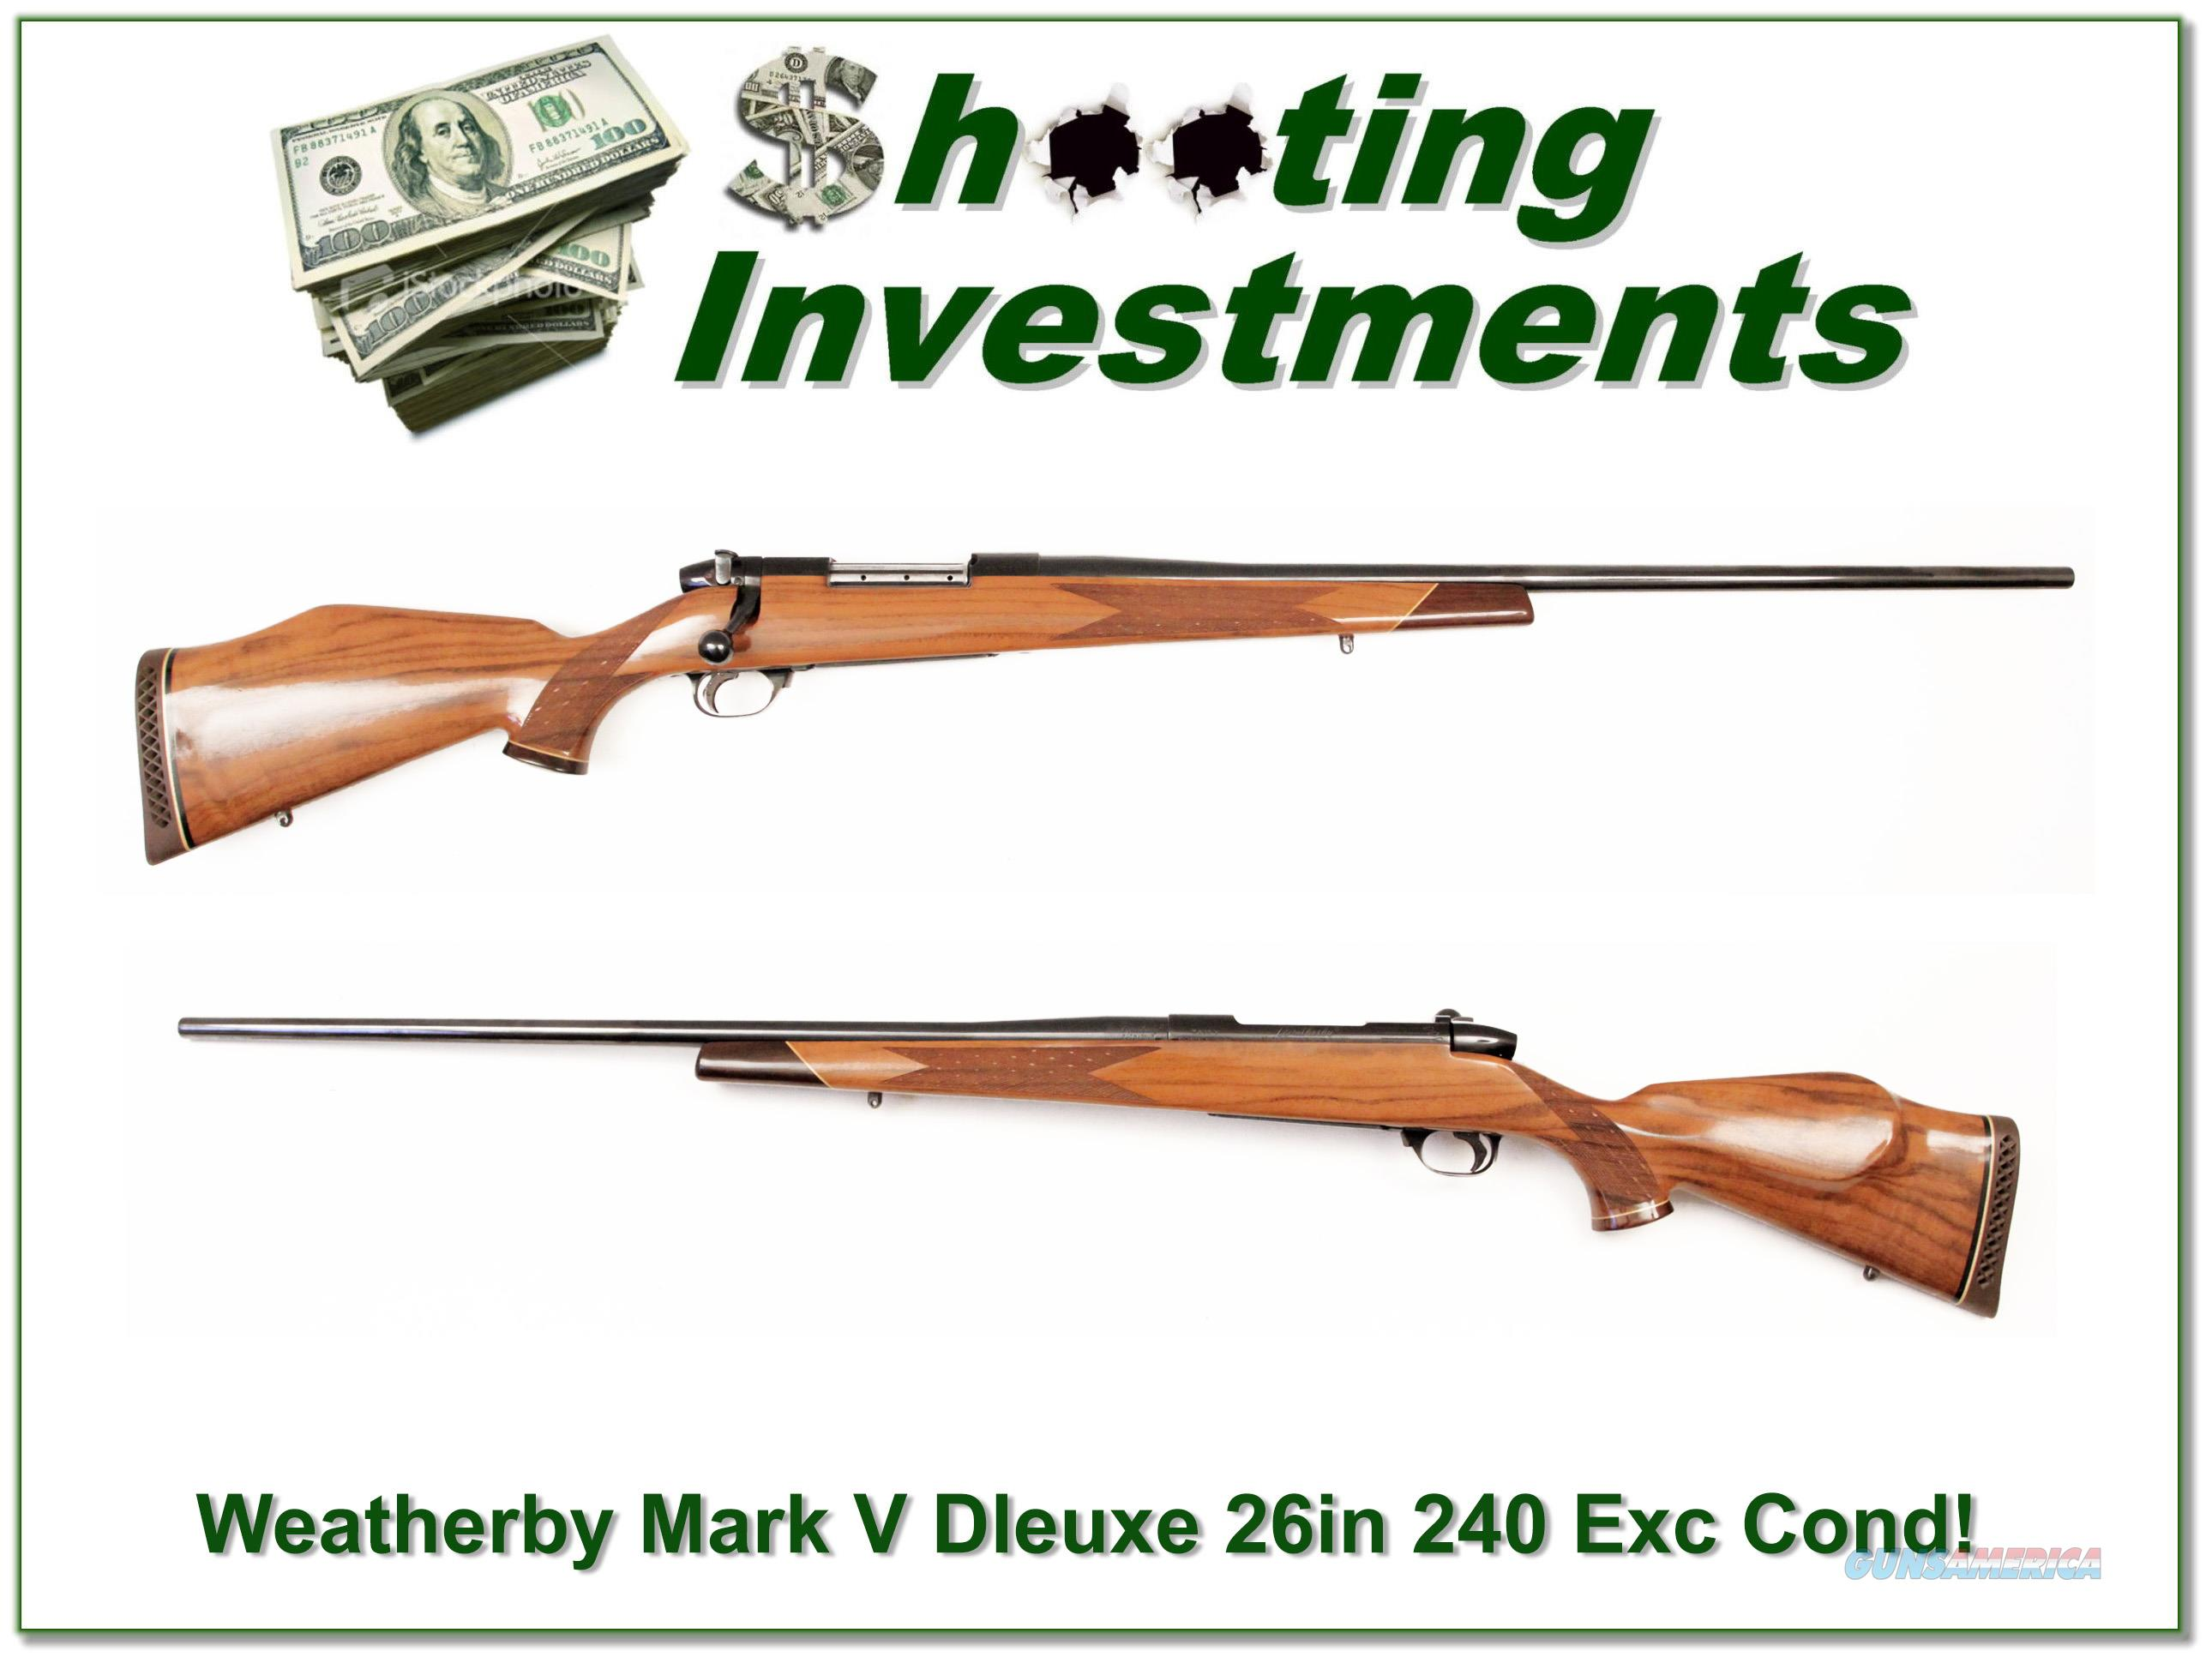 Weatherby Mark V Deluxe 26in 240 Wthy mag Exc Cond!  Guns > Rifles > Weatherby Rifles > Sporting